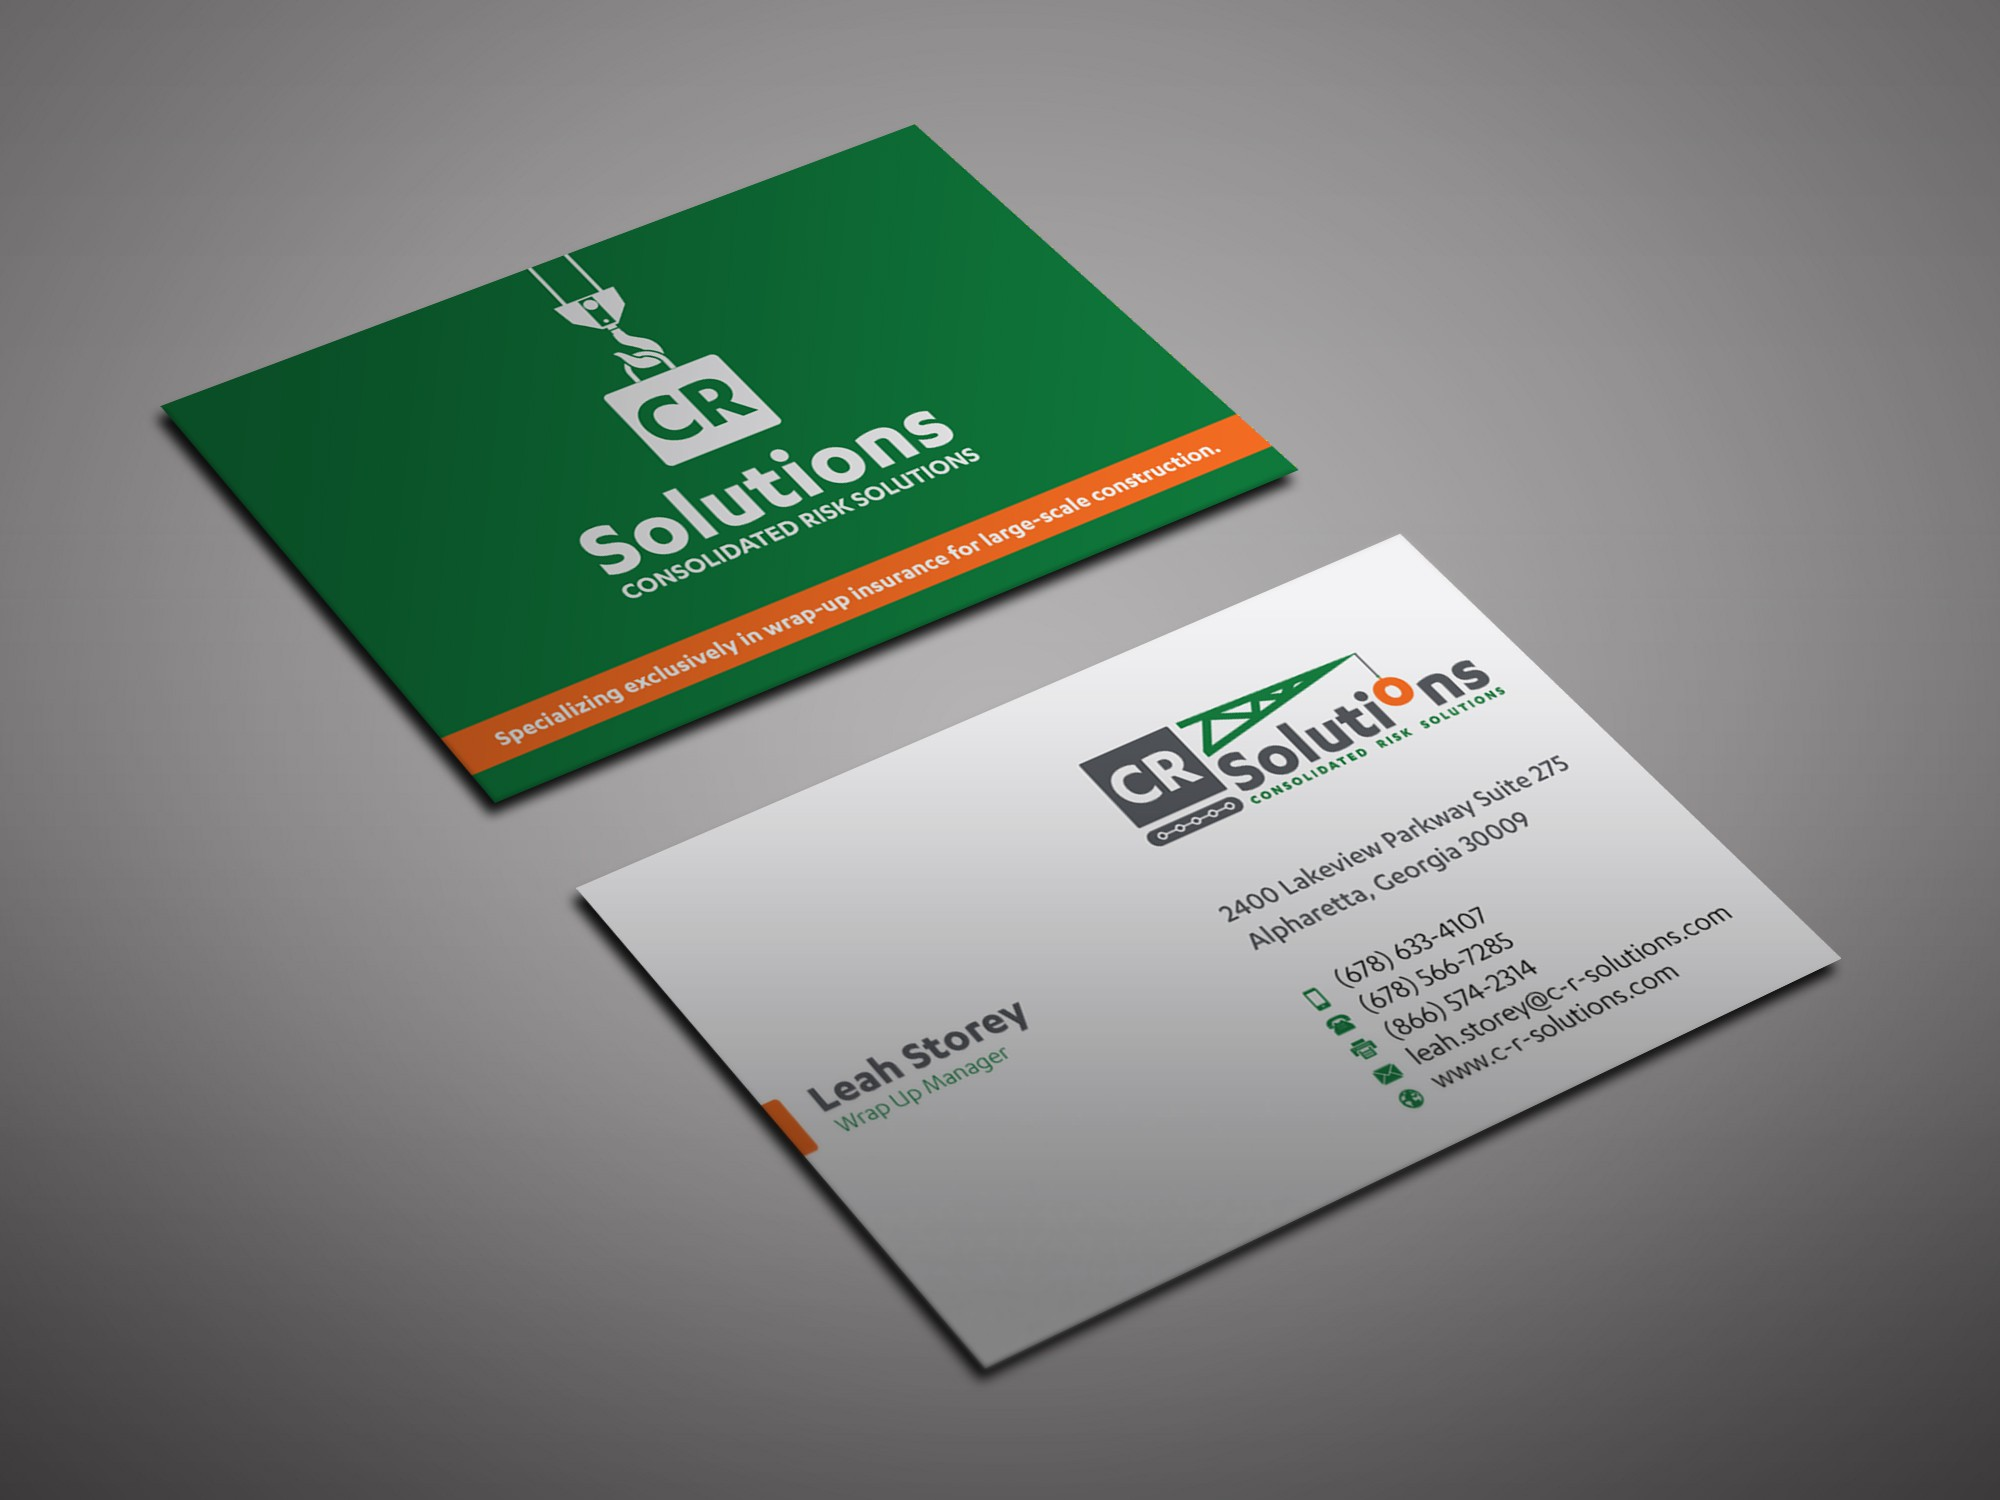 Create a stylish business card and letterhead for company serving construction industry